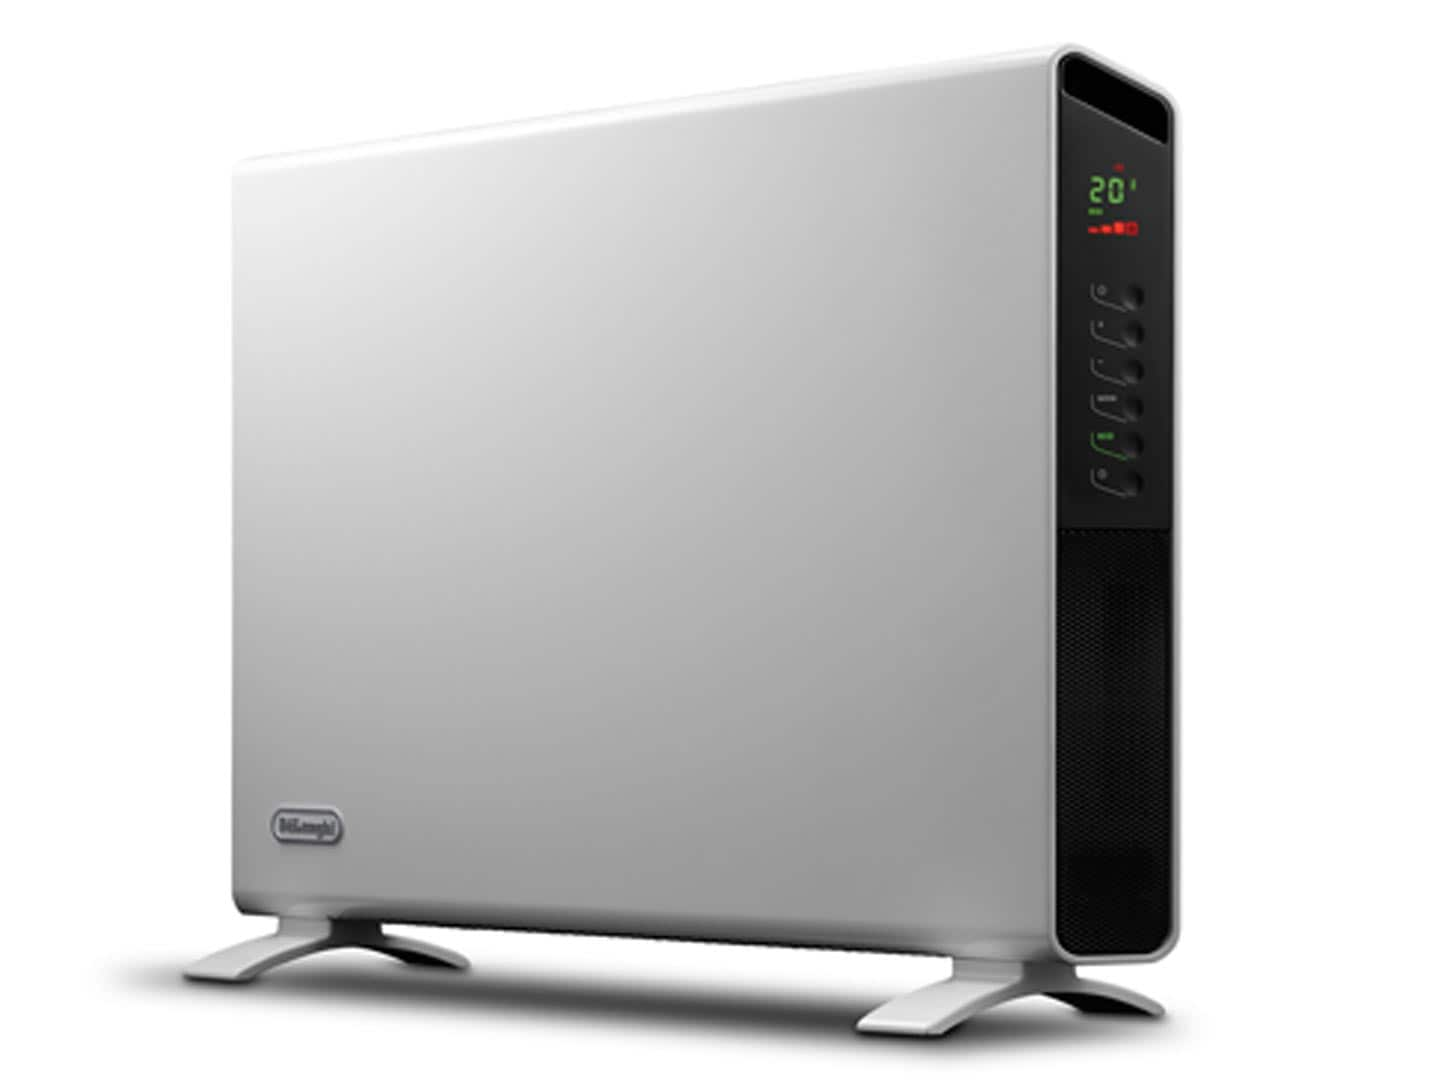 hight resolution of delonghi panel heater with electronic timer hcx9124e